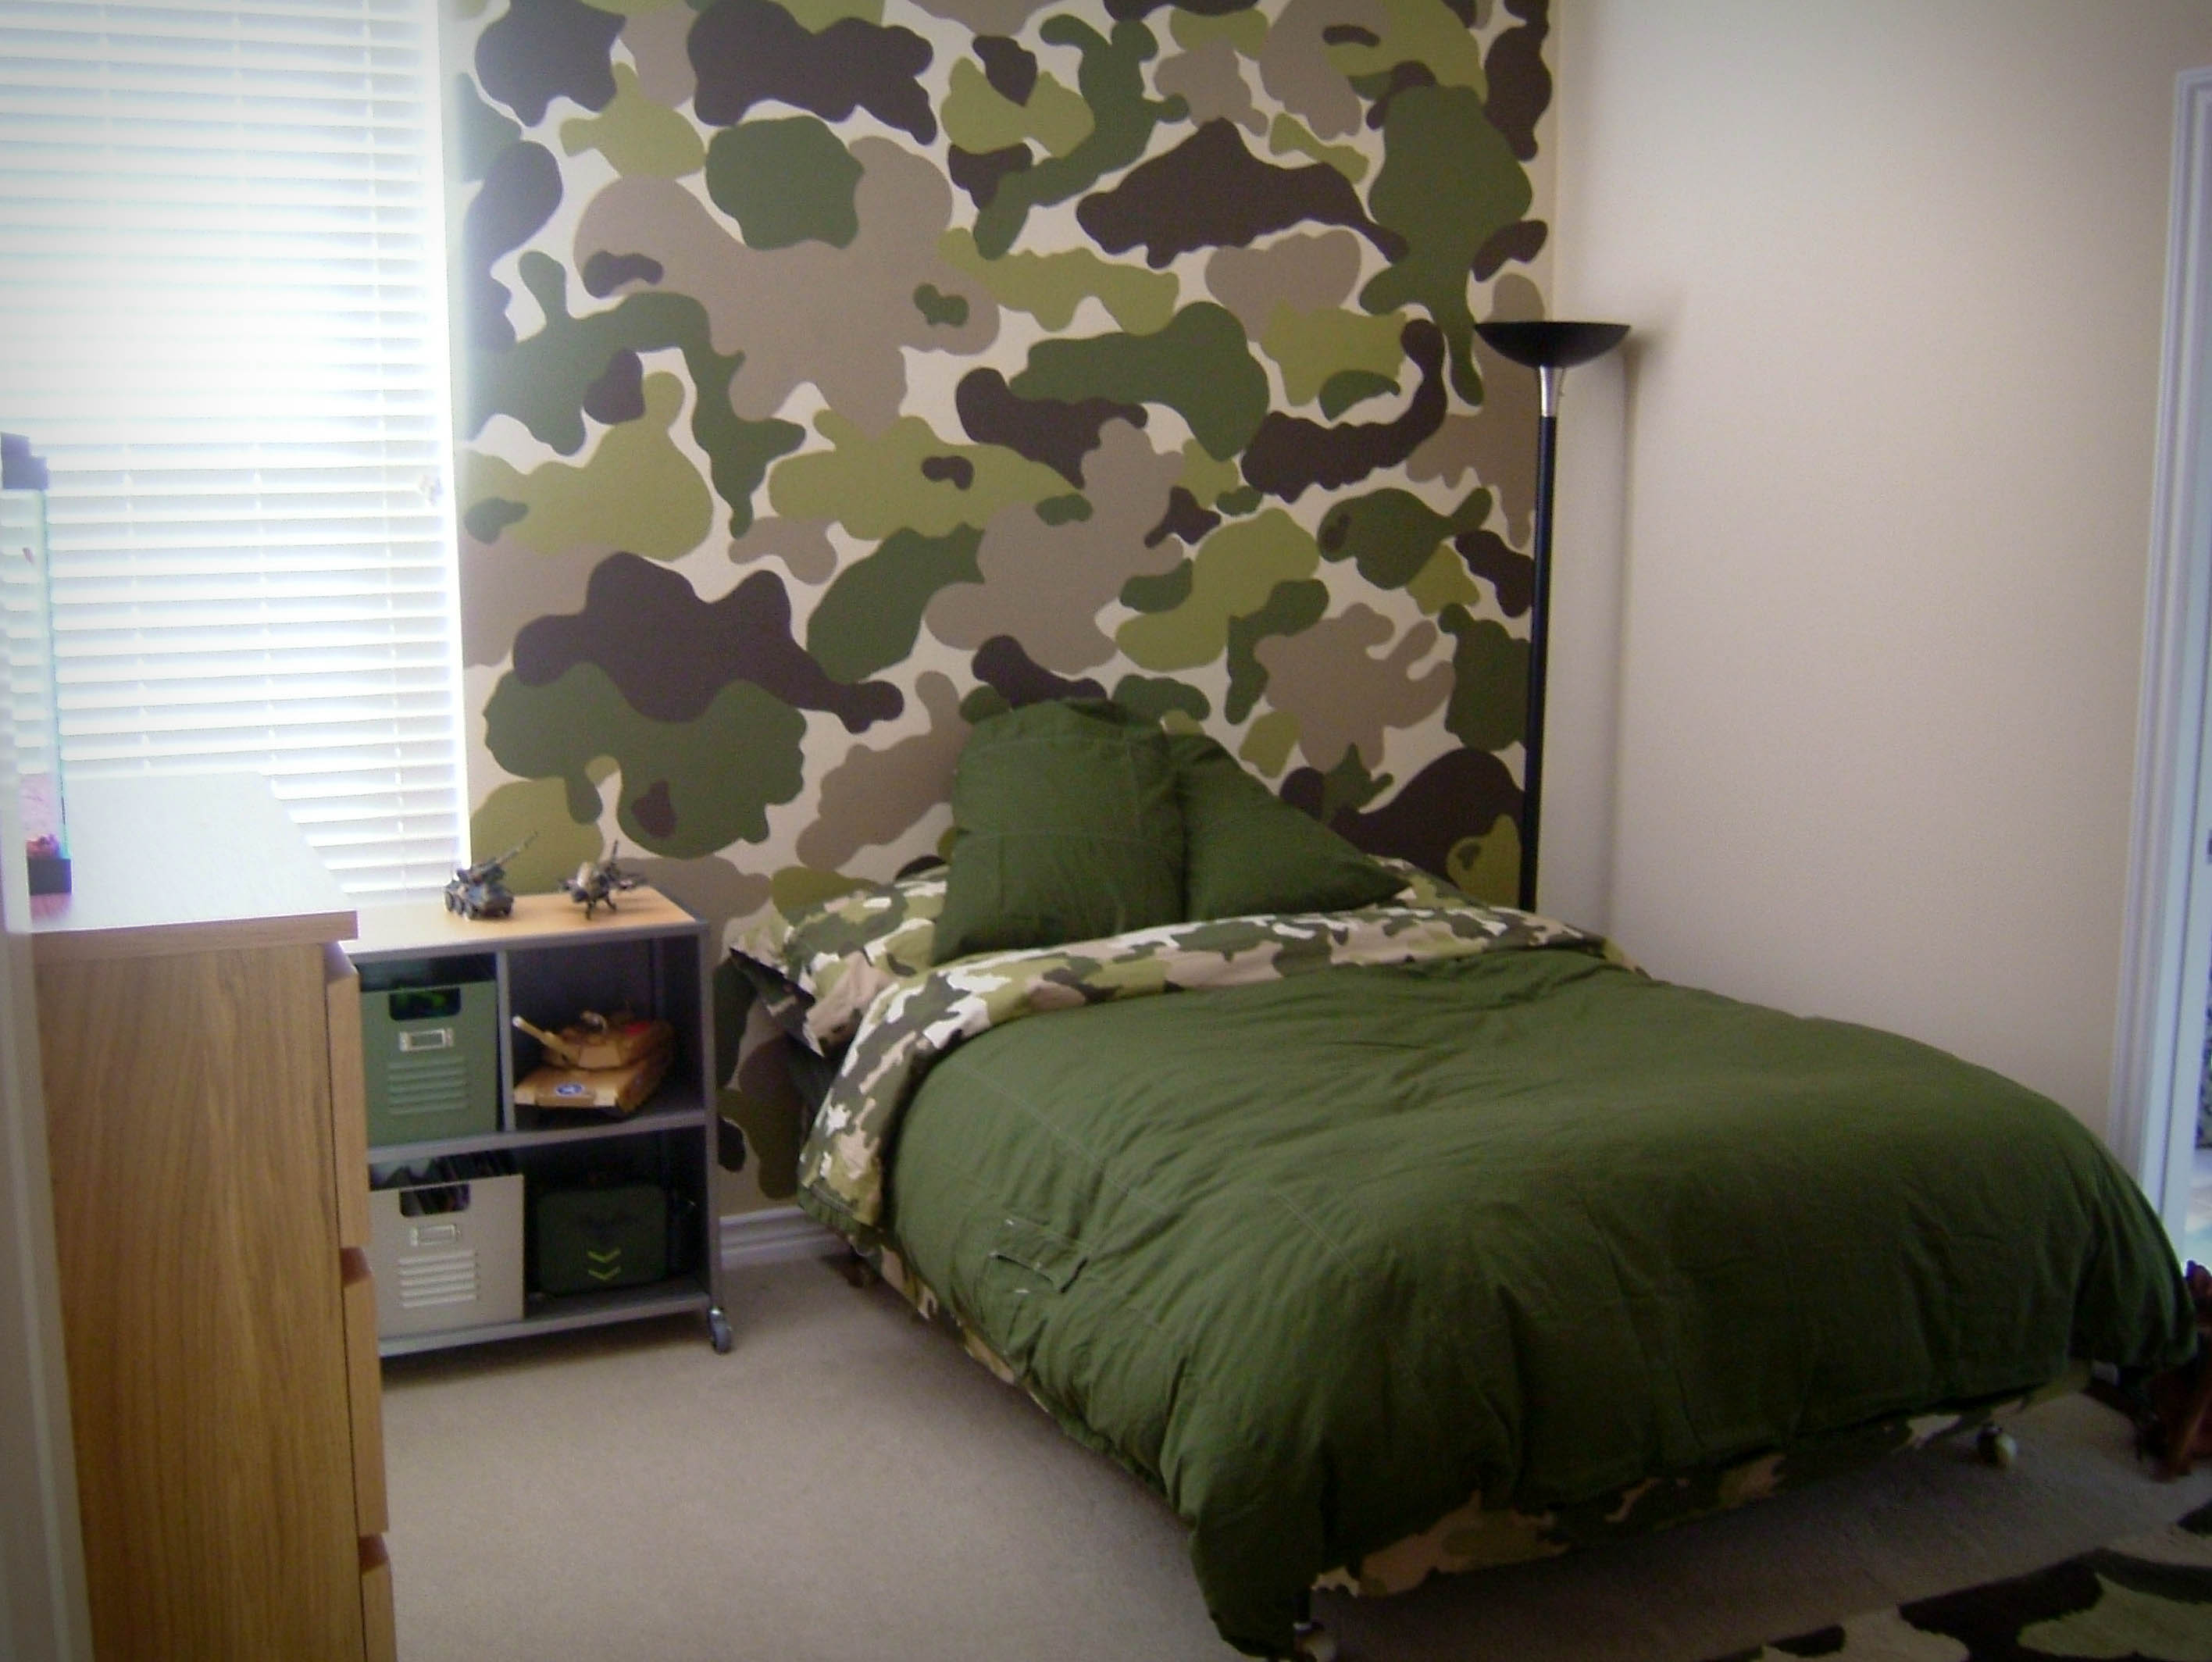 Room swap part 1 the modchik for Camouflage bedroom ideas for kids